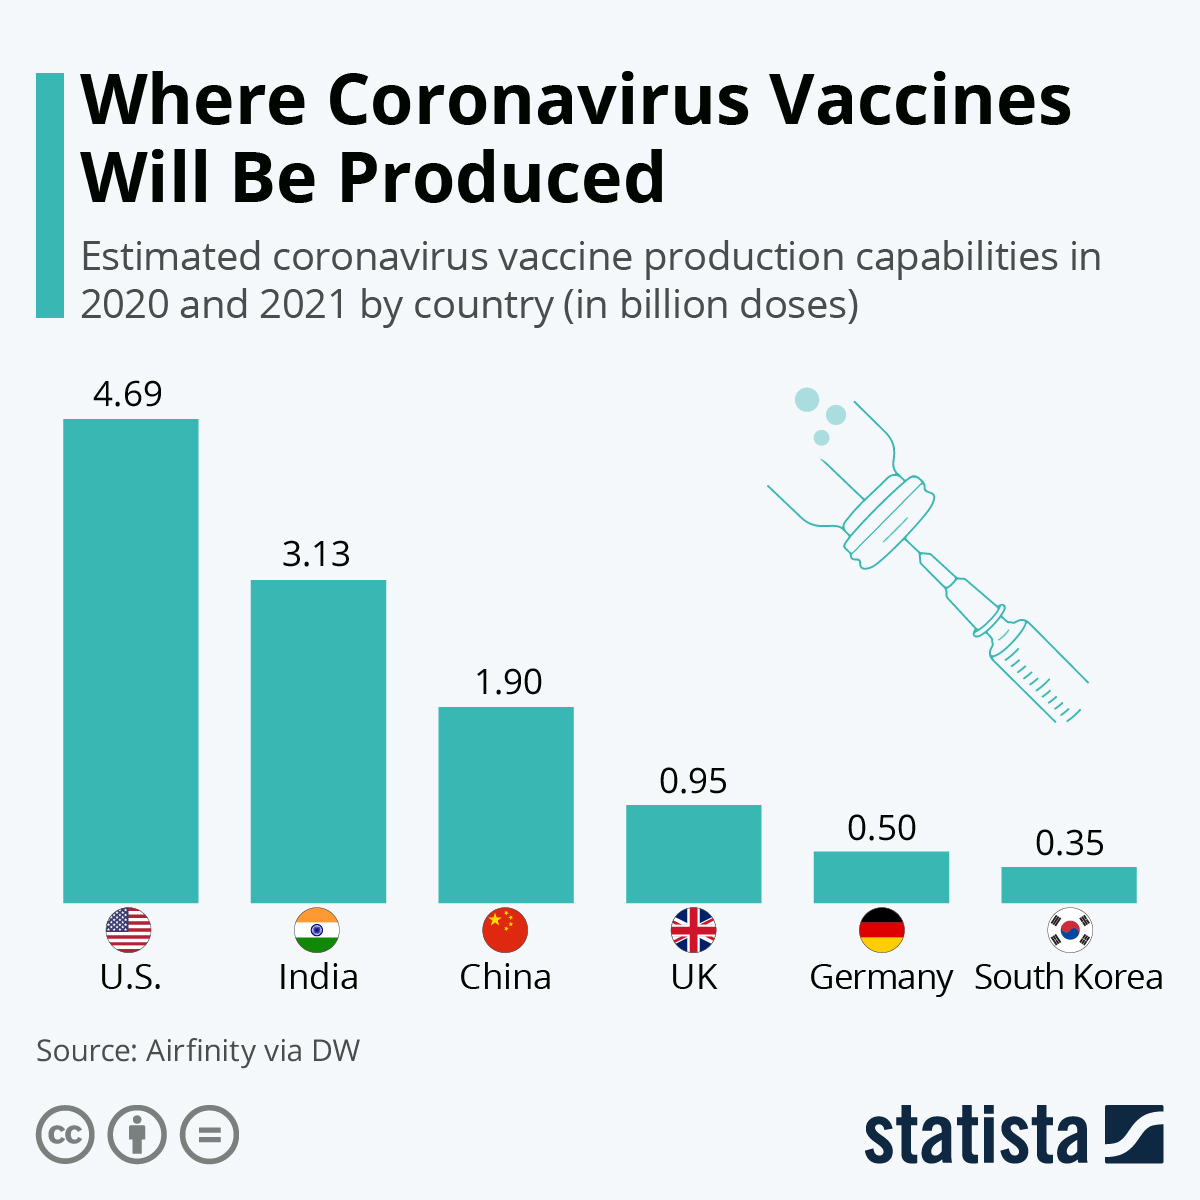 Coronavirus vaccines production: which countries?